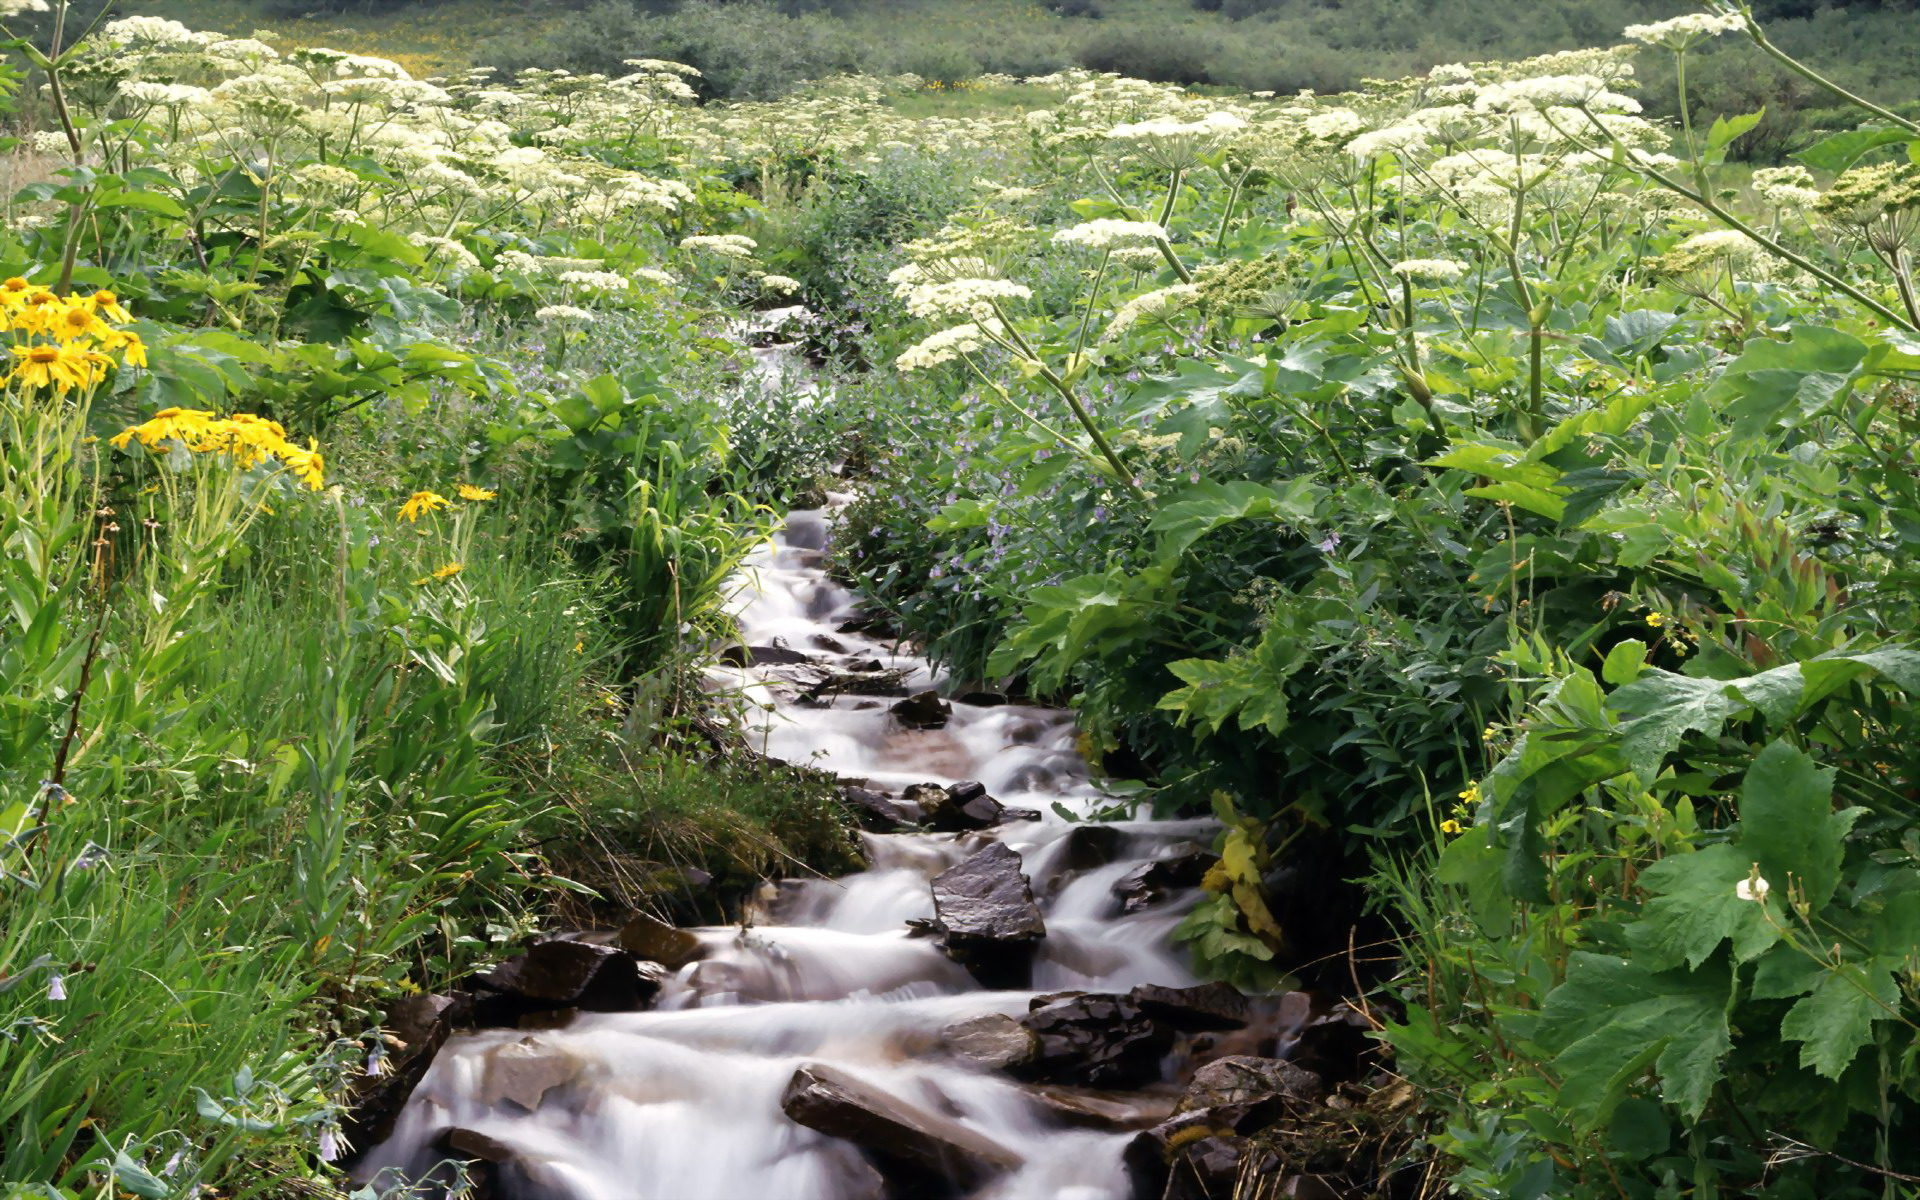 Wildflowers Border a Mountain Stream White River National Forest 1920x1200